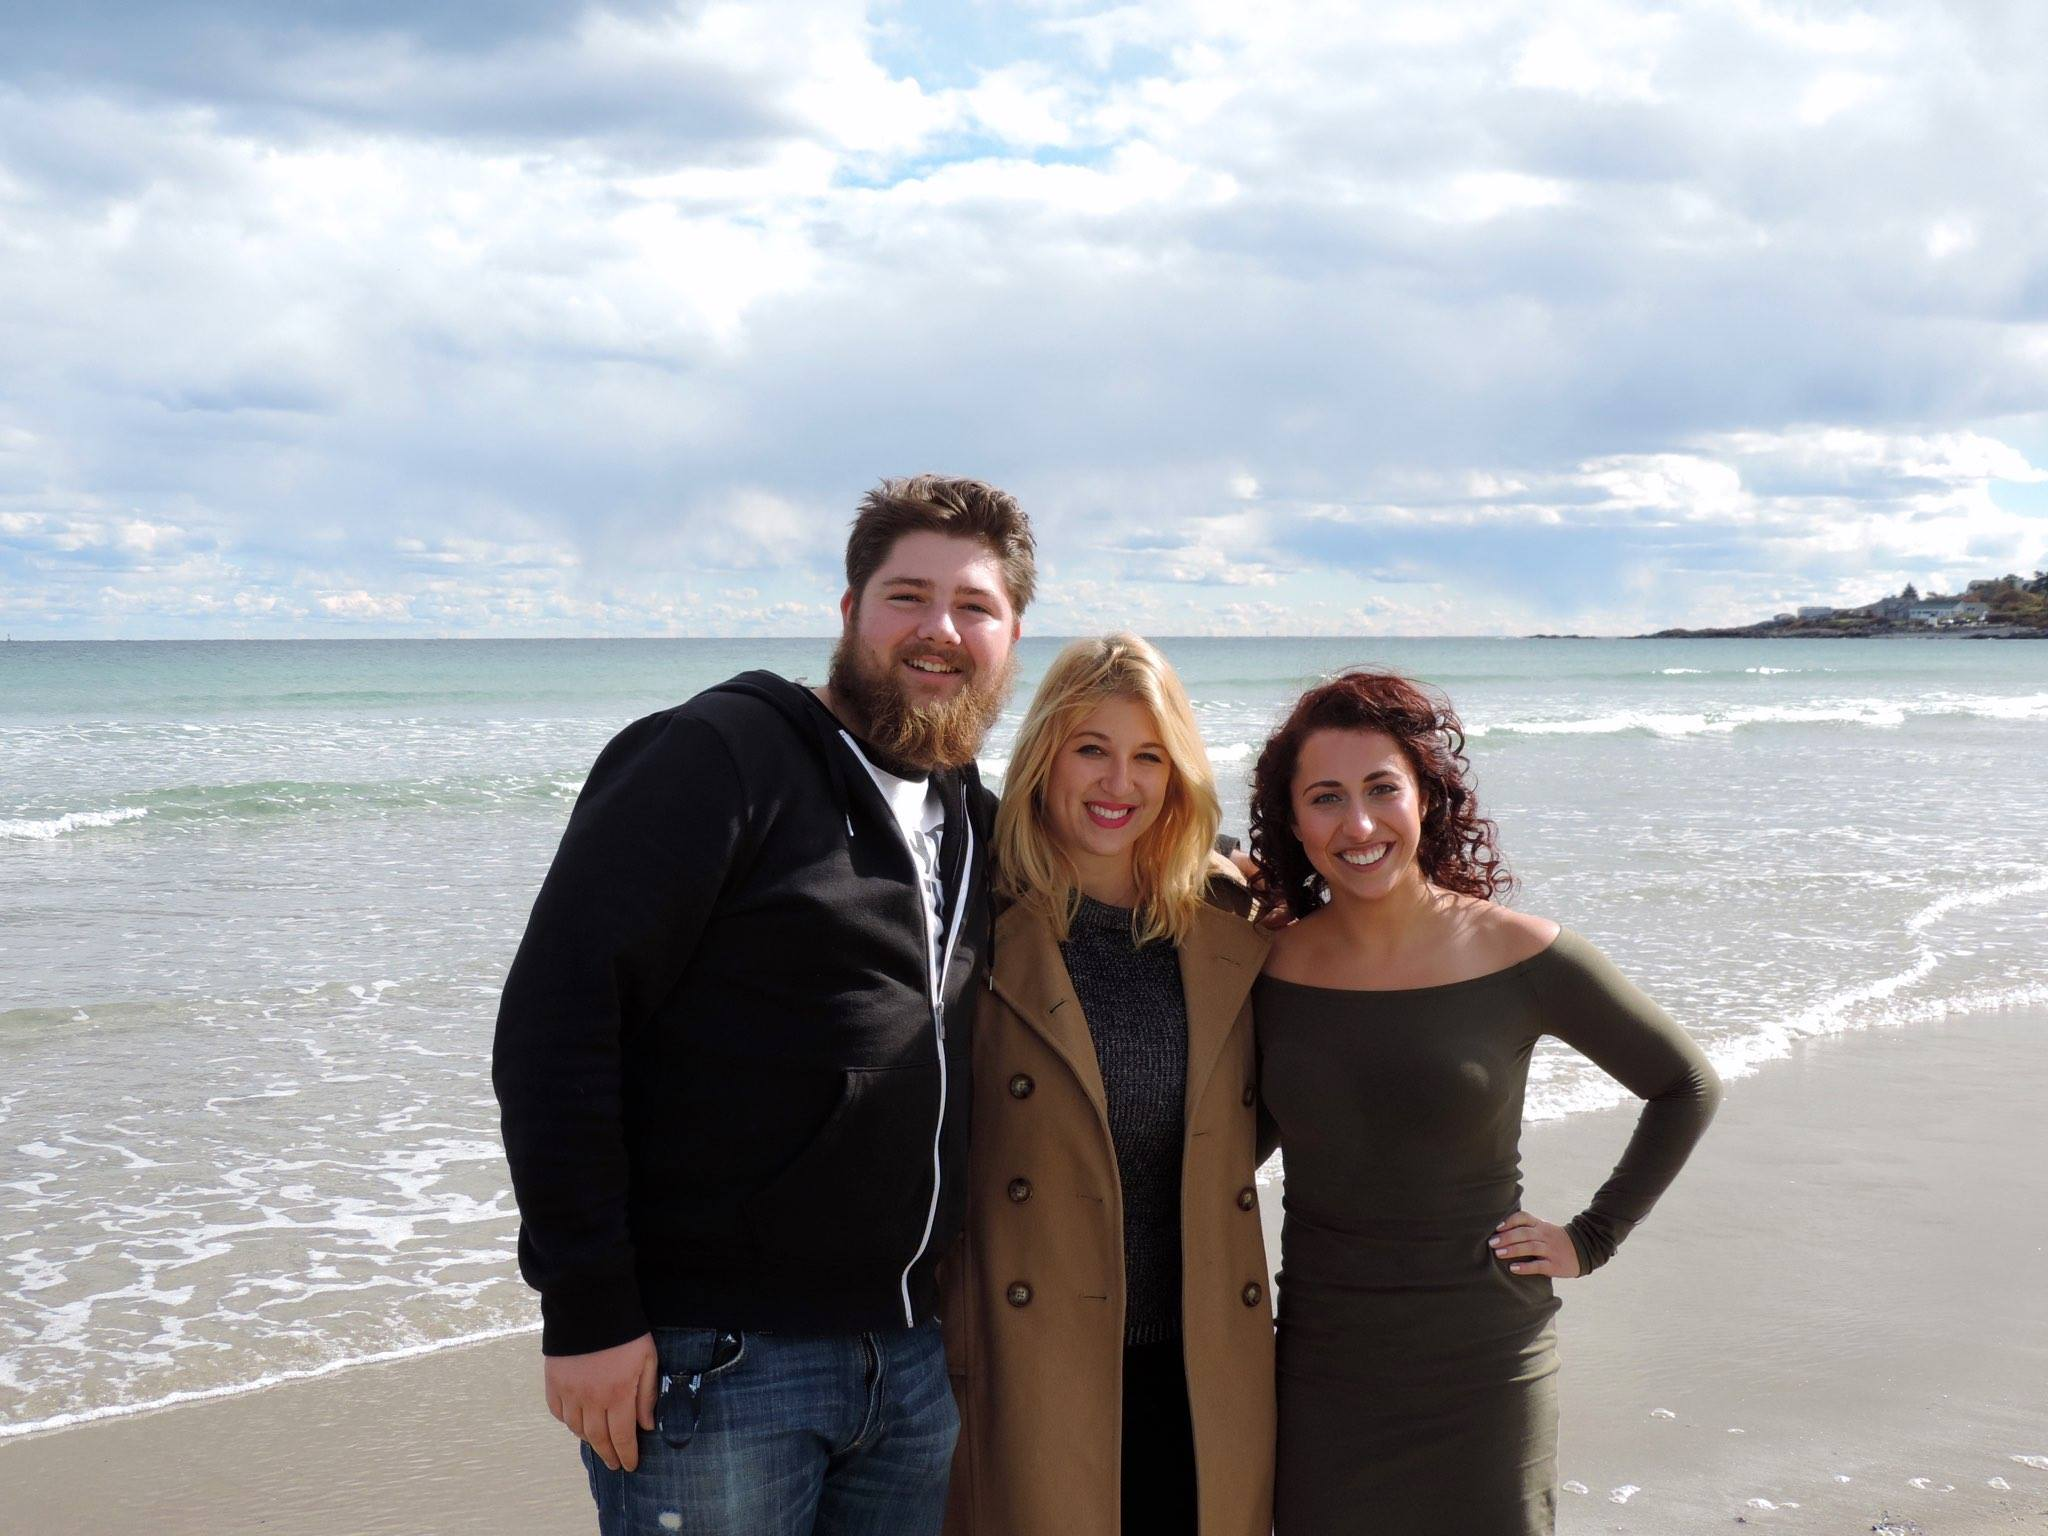 From left to right: key grip Ian Buchanan, director Katie Ennis, and myself after the Filmmakers' Brunch